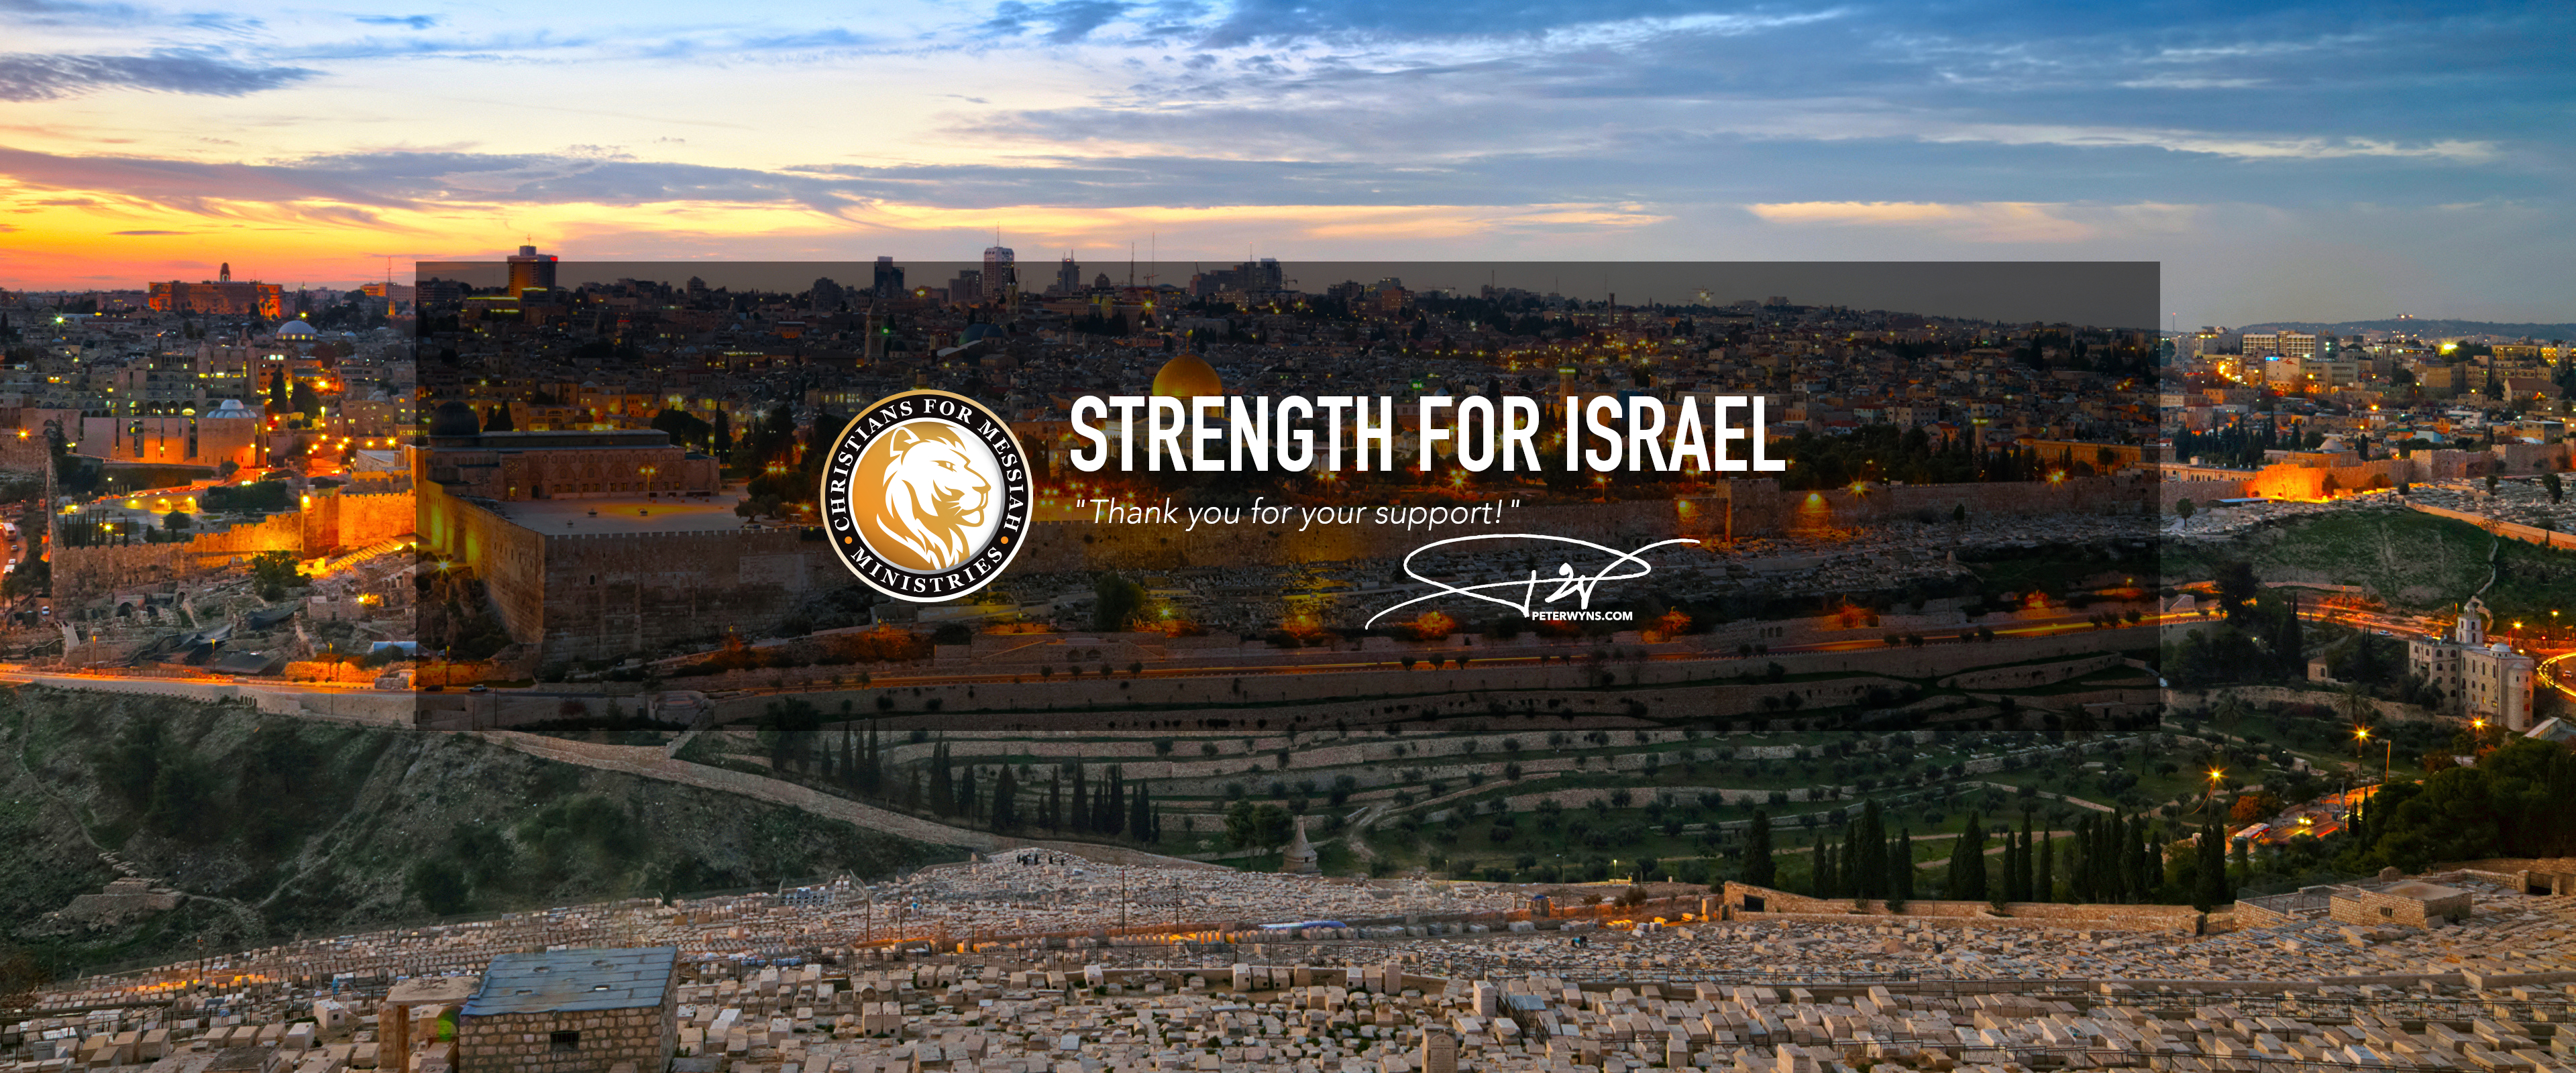 strength for israel banner